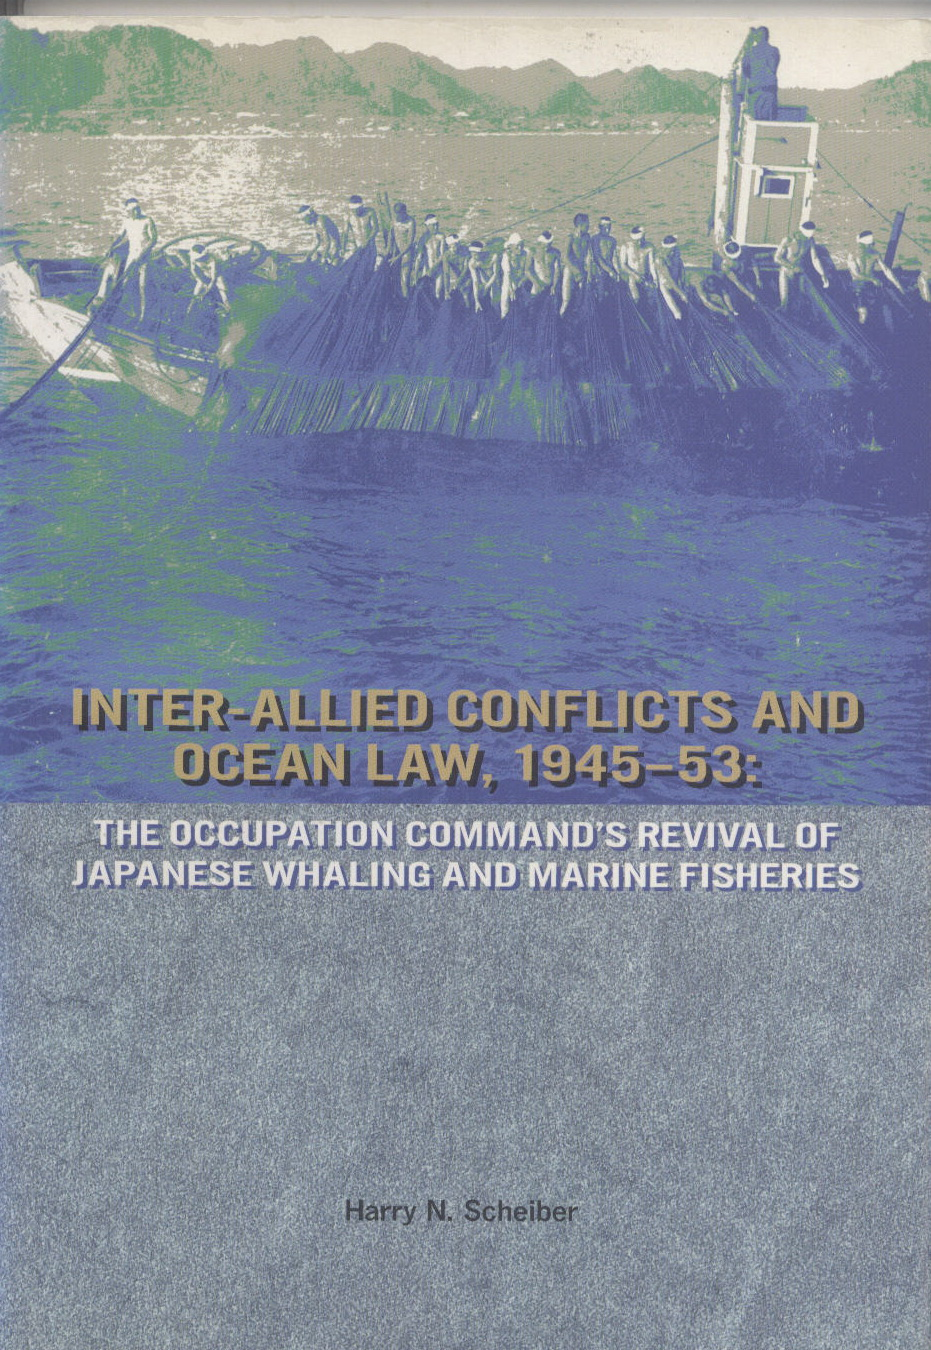 Inter-Allied conflicts and ocean law, 1945-53